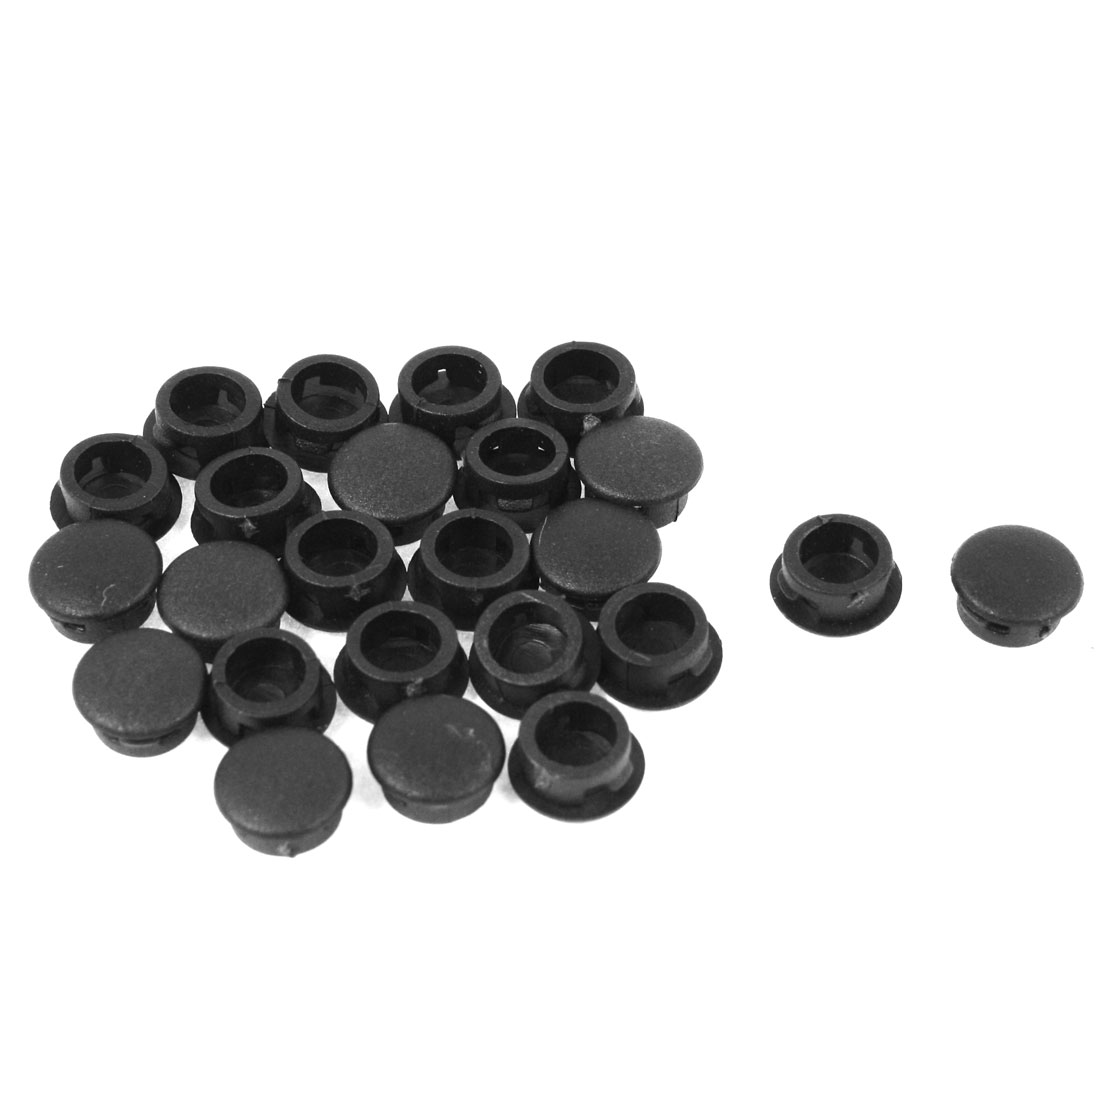 24 Pcs Black Plastic 10mm Diameter Round Tubing Tube Insert Caps Covers